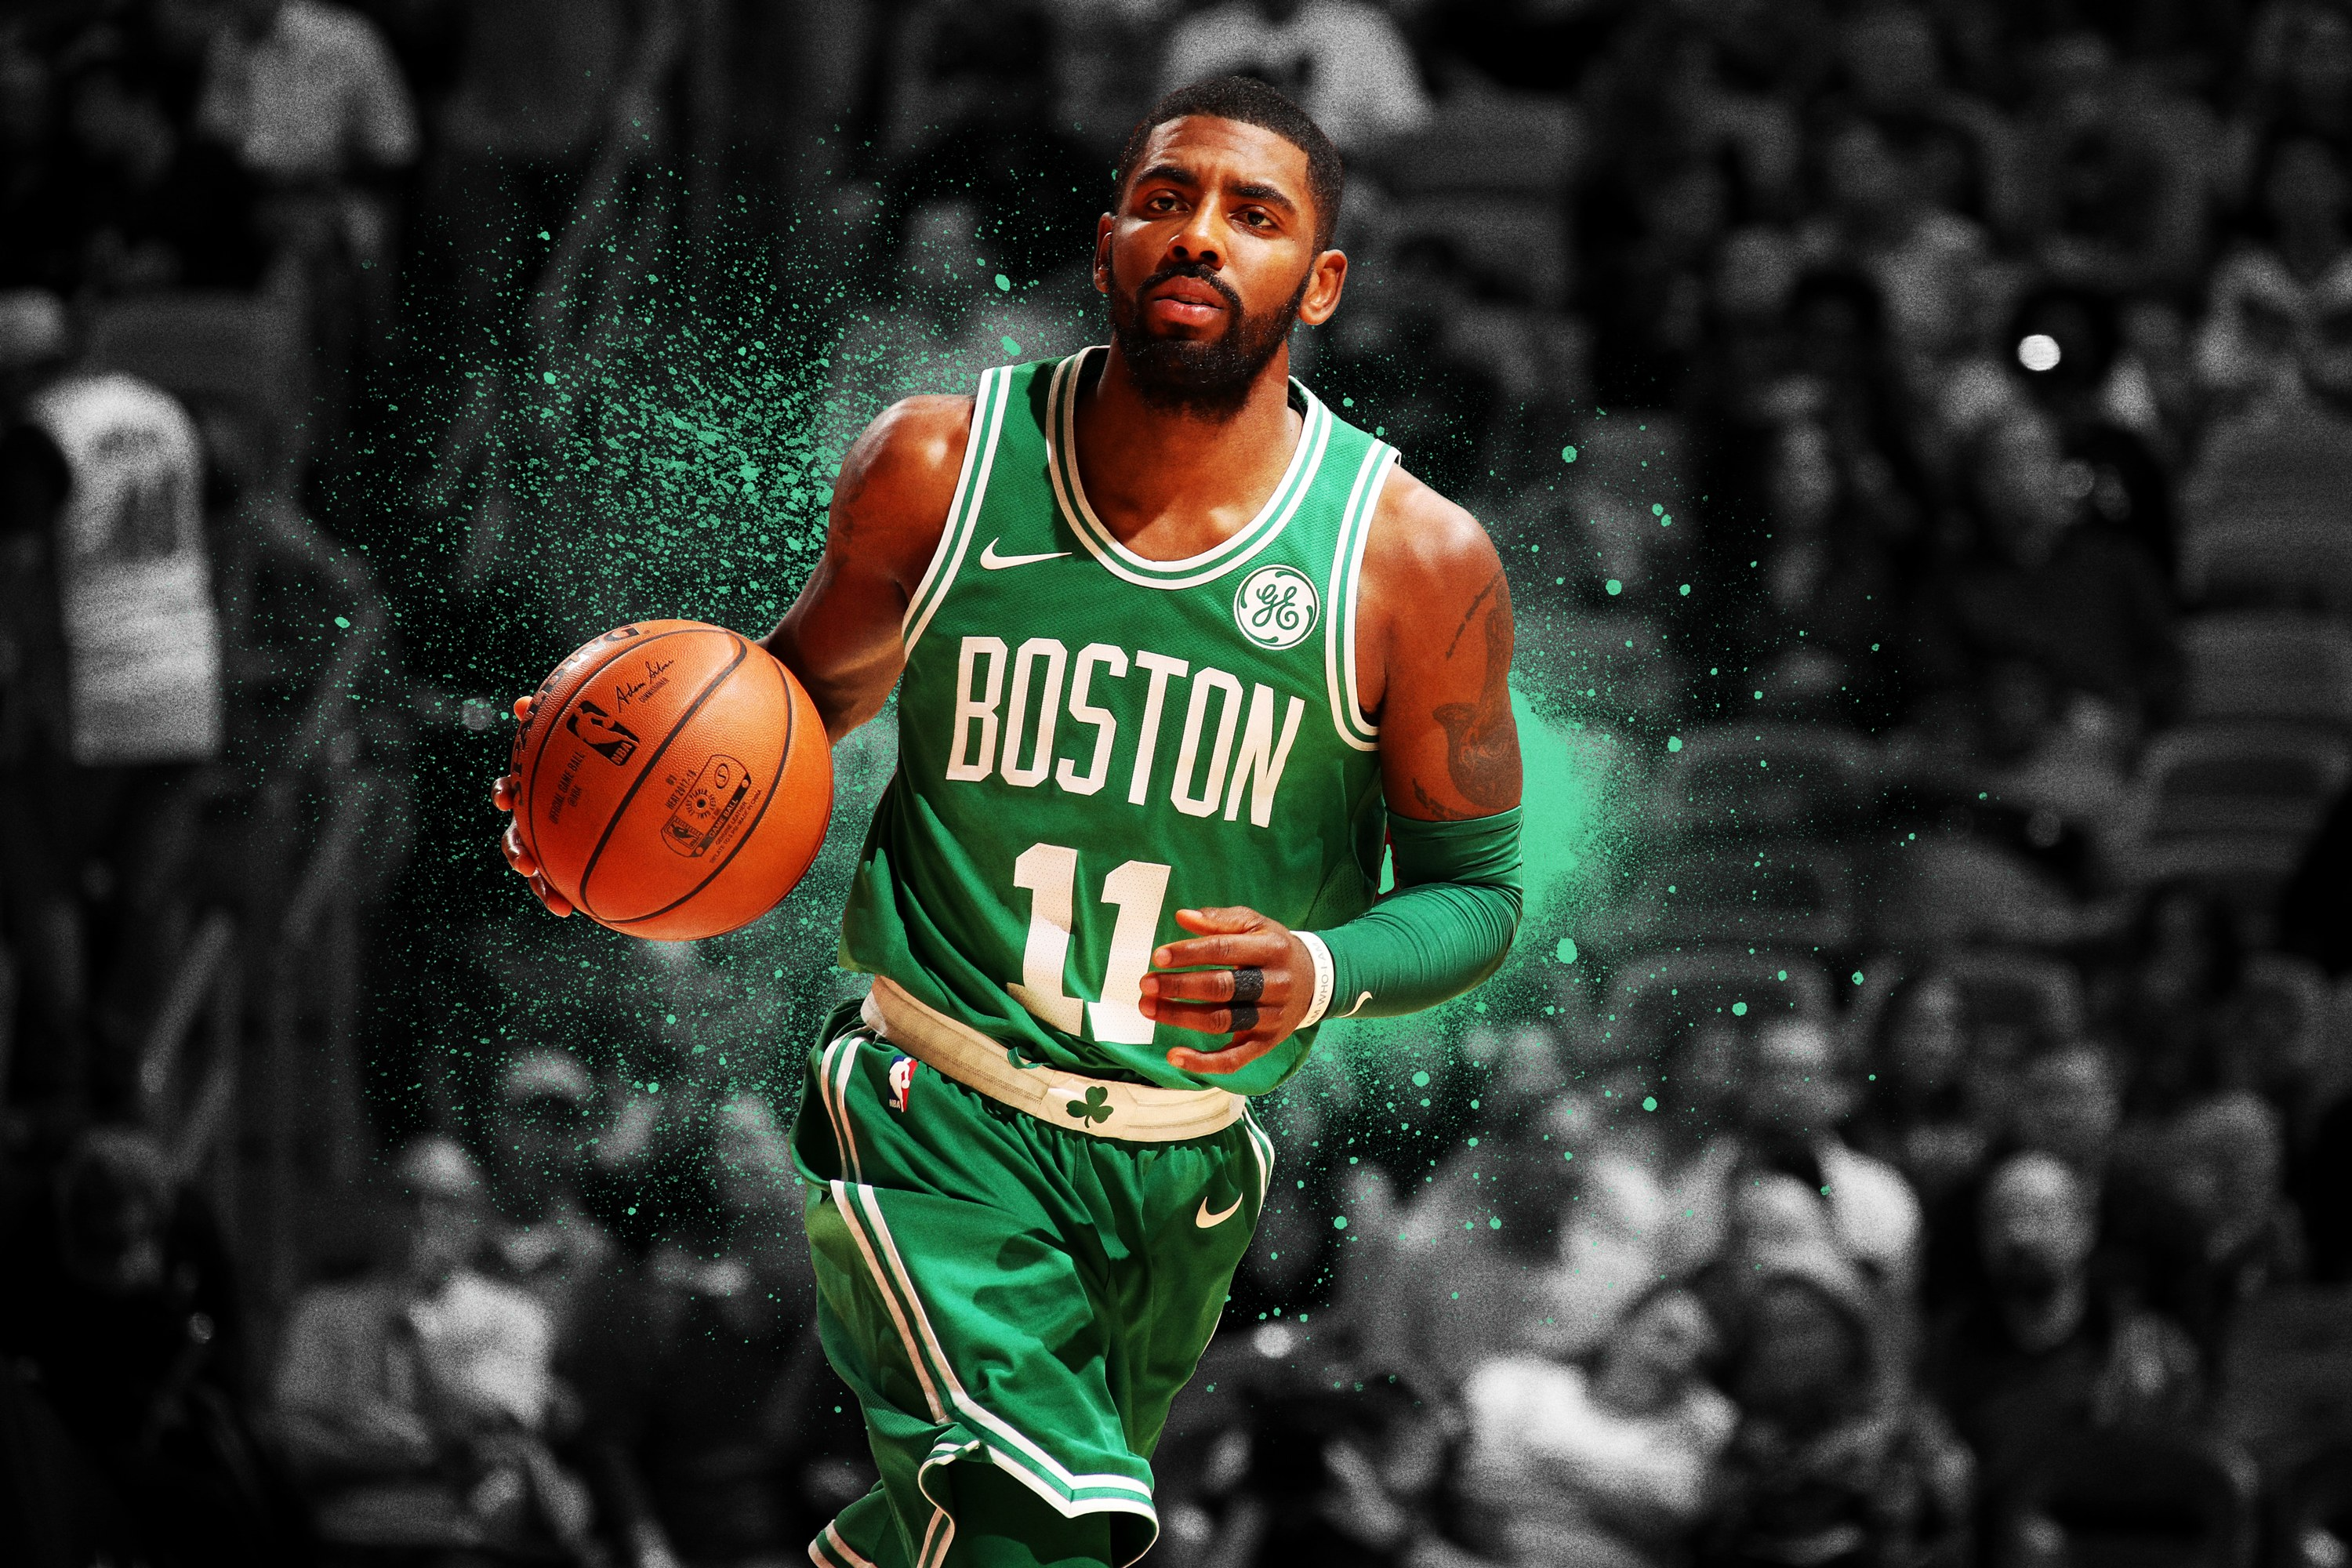 kyrie irving wallpaper  Kyrie Irving, HD Sports, 4k Wallpapers, Images, Backgrounds, Photos ...